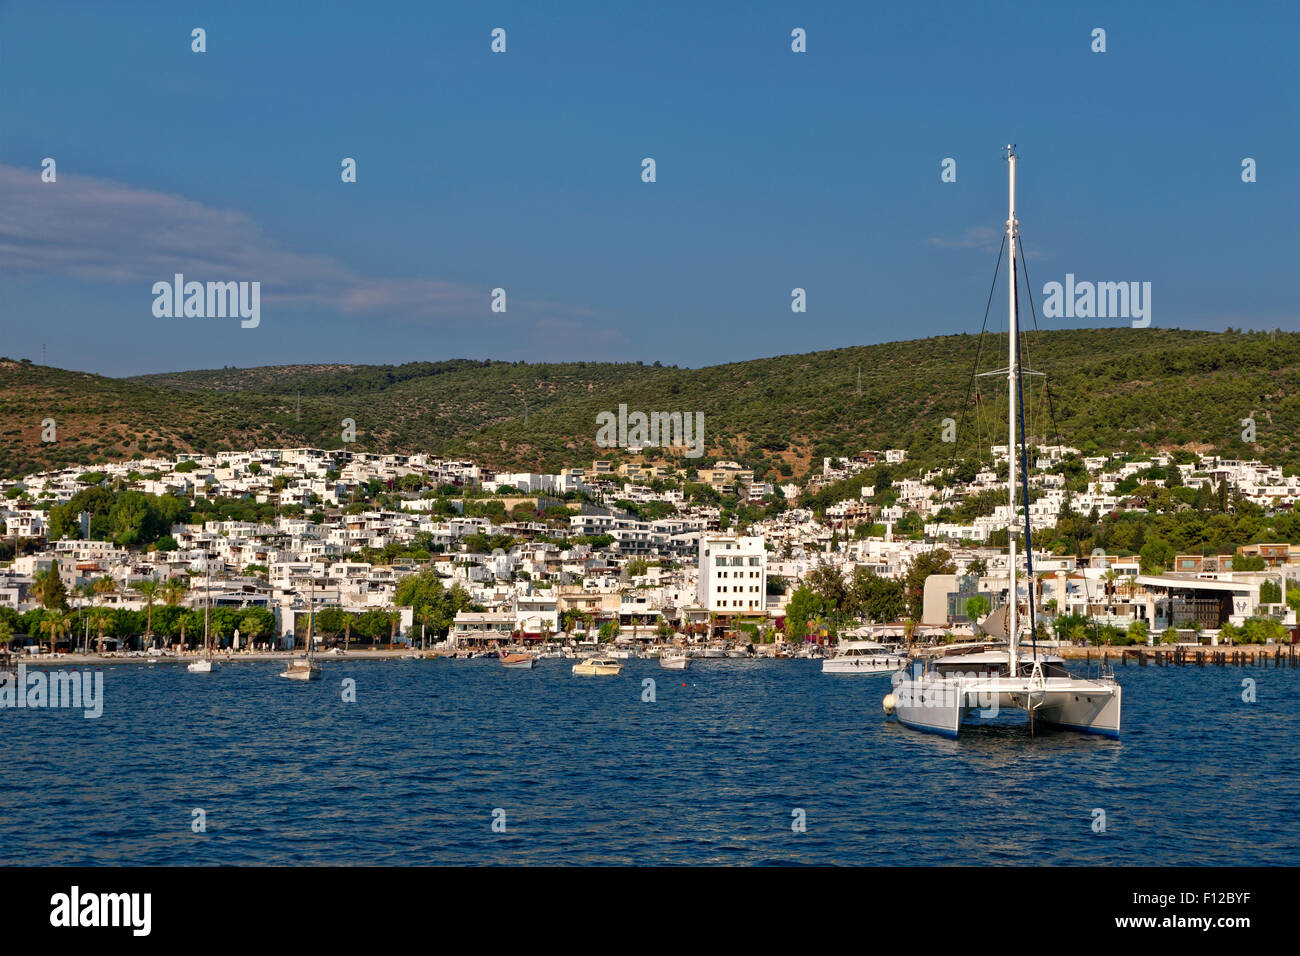 Catamaran and Yacht anchorages in the East Bay at Bodrum town, Muğla Province, Turkey - Stock Image